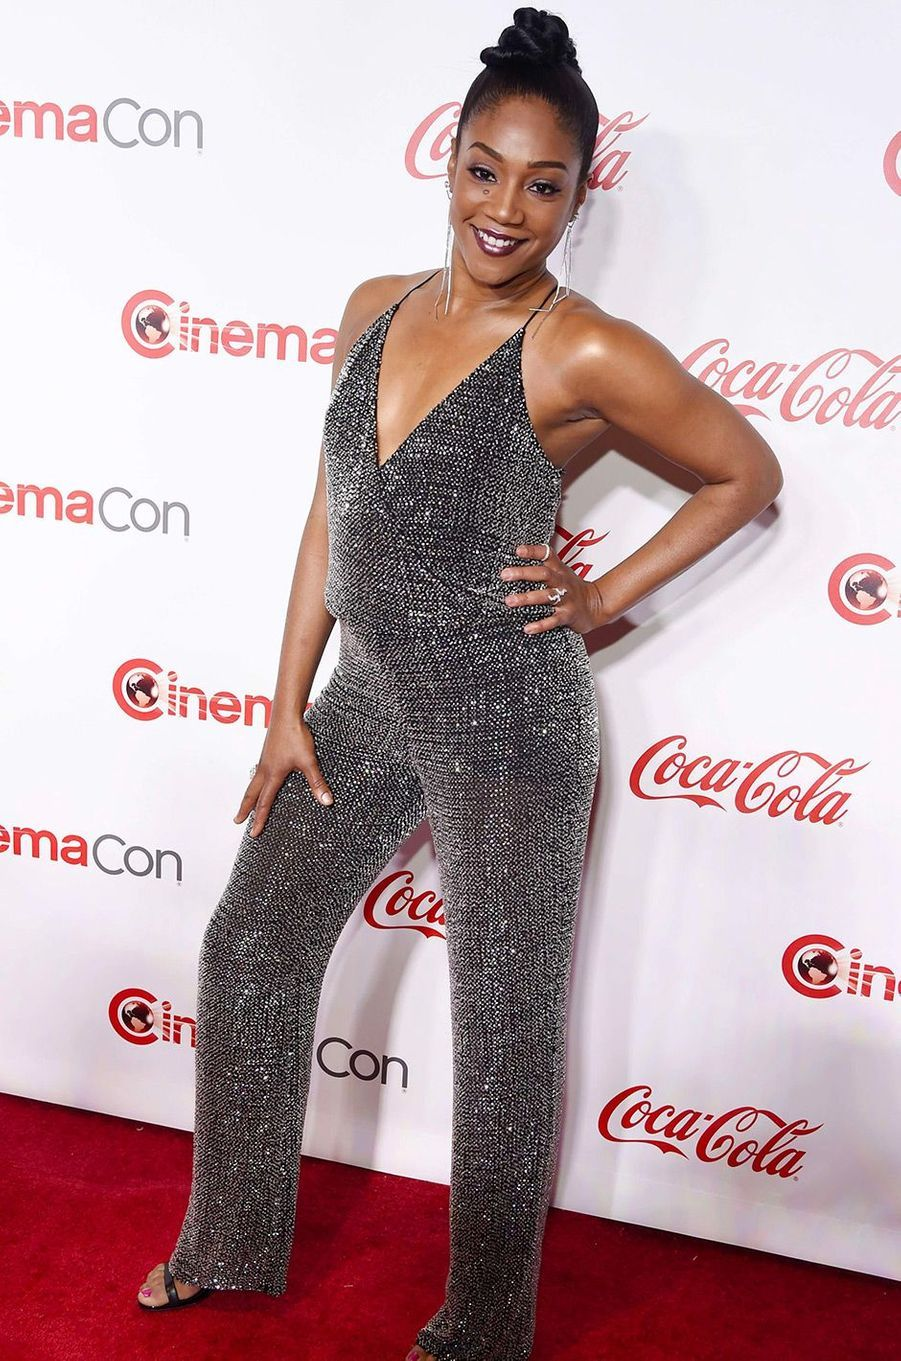 Tiffany Haddish au CinemaCon de Las Vegas, jeudi 26 avril 2018